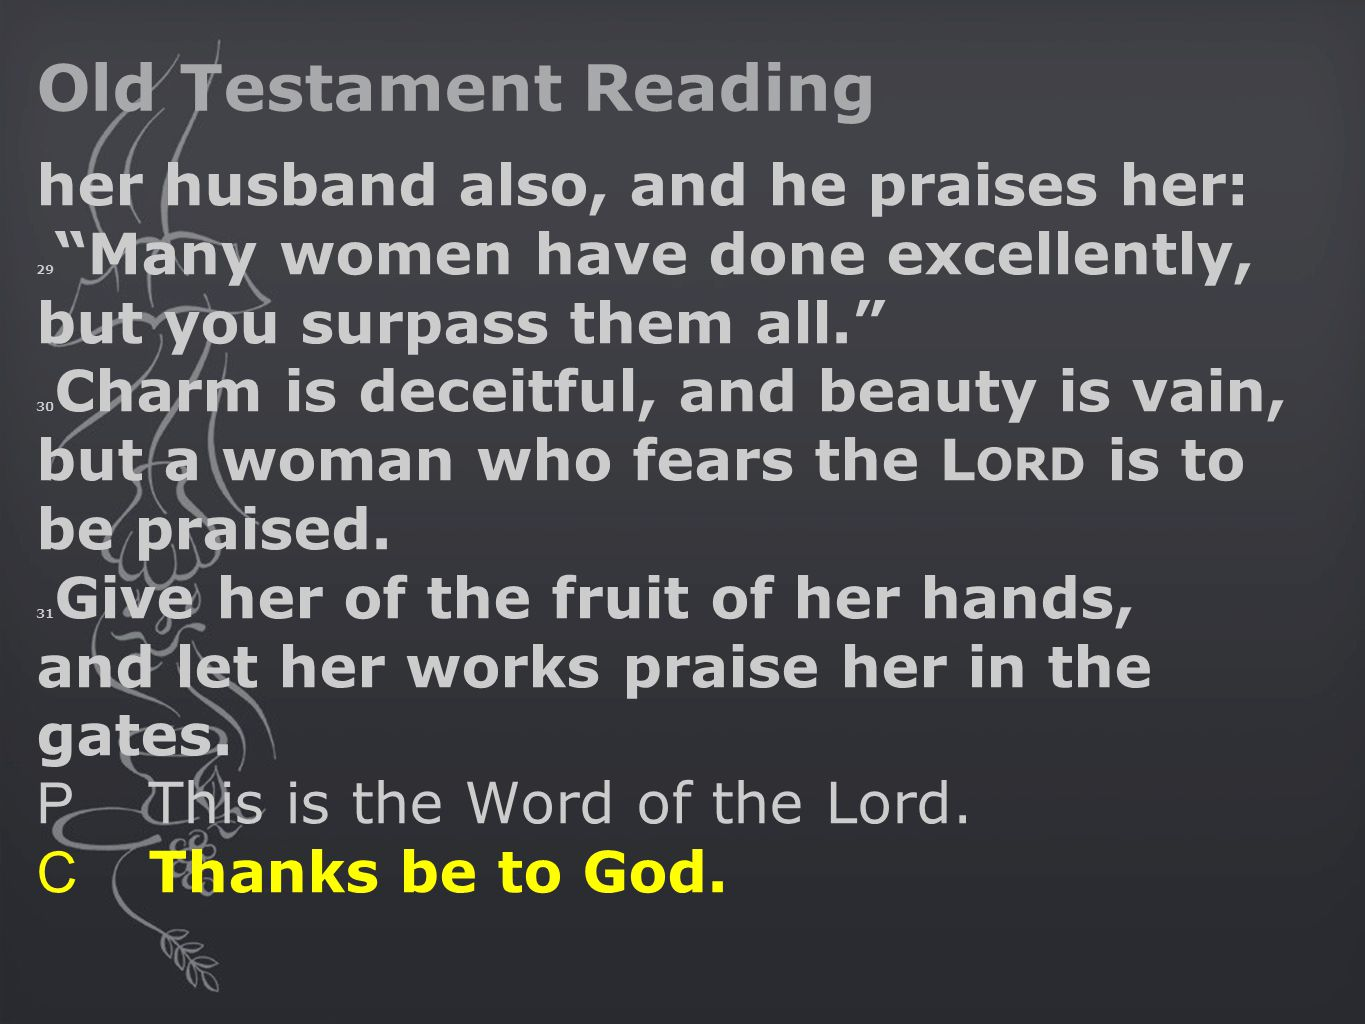 Old Testament Reading her husband also, and he praises her: 29 Many women have done excellently, but you surpass them all. 30 Charm is deceitful, and beauty is vain, but a woman who fears the L ORD is to be praised.